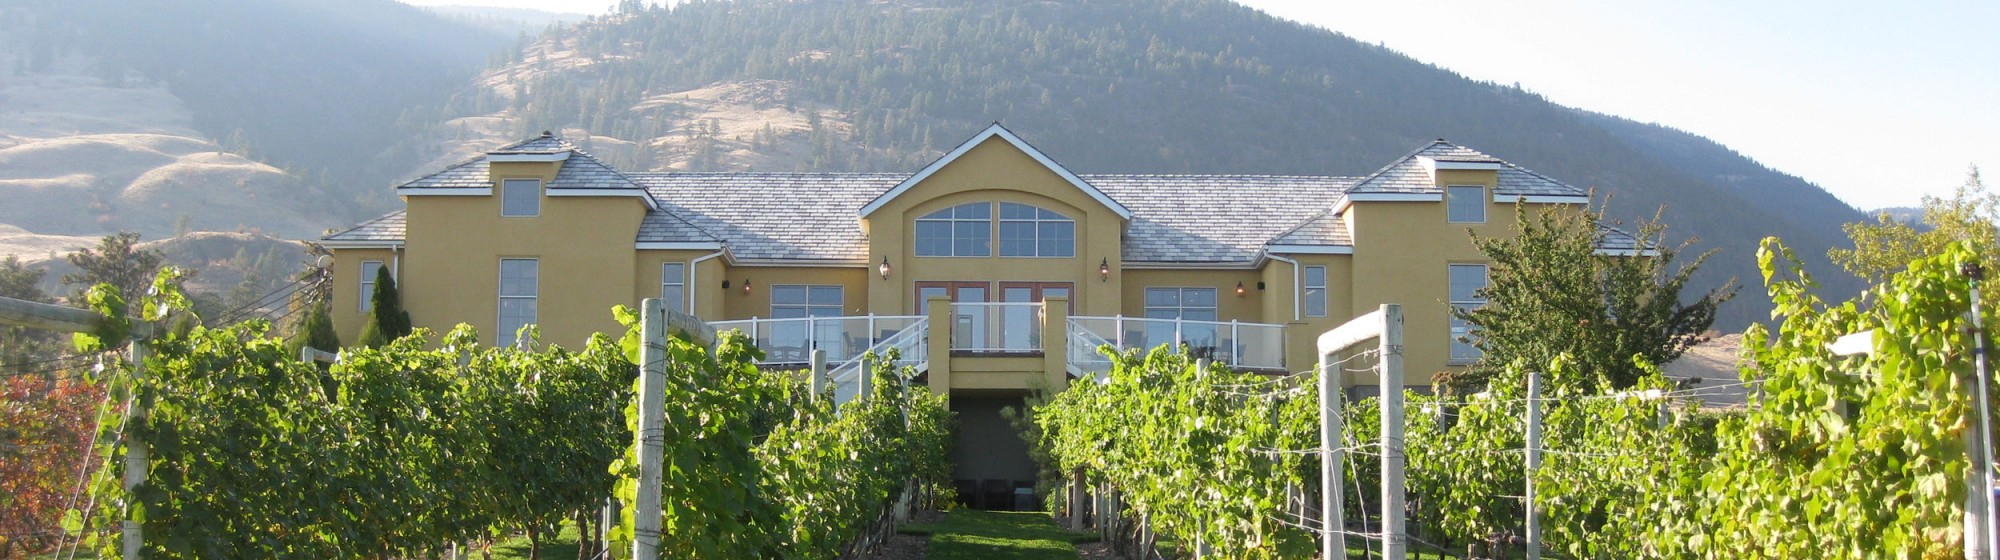 distinctly kelowna wine tours south okanagan